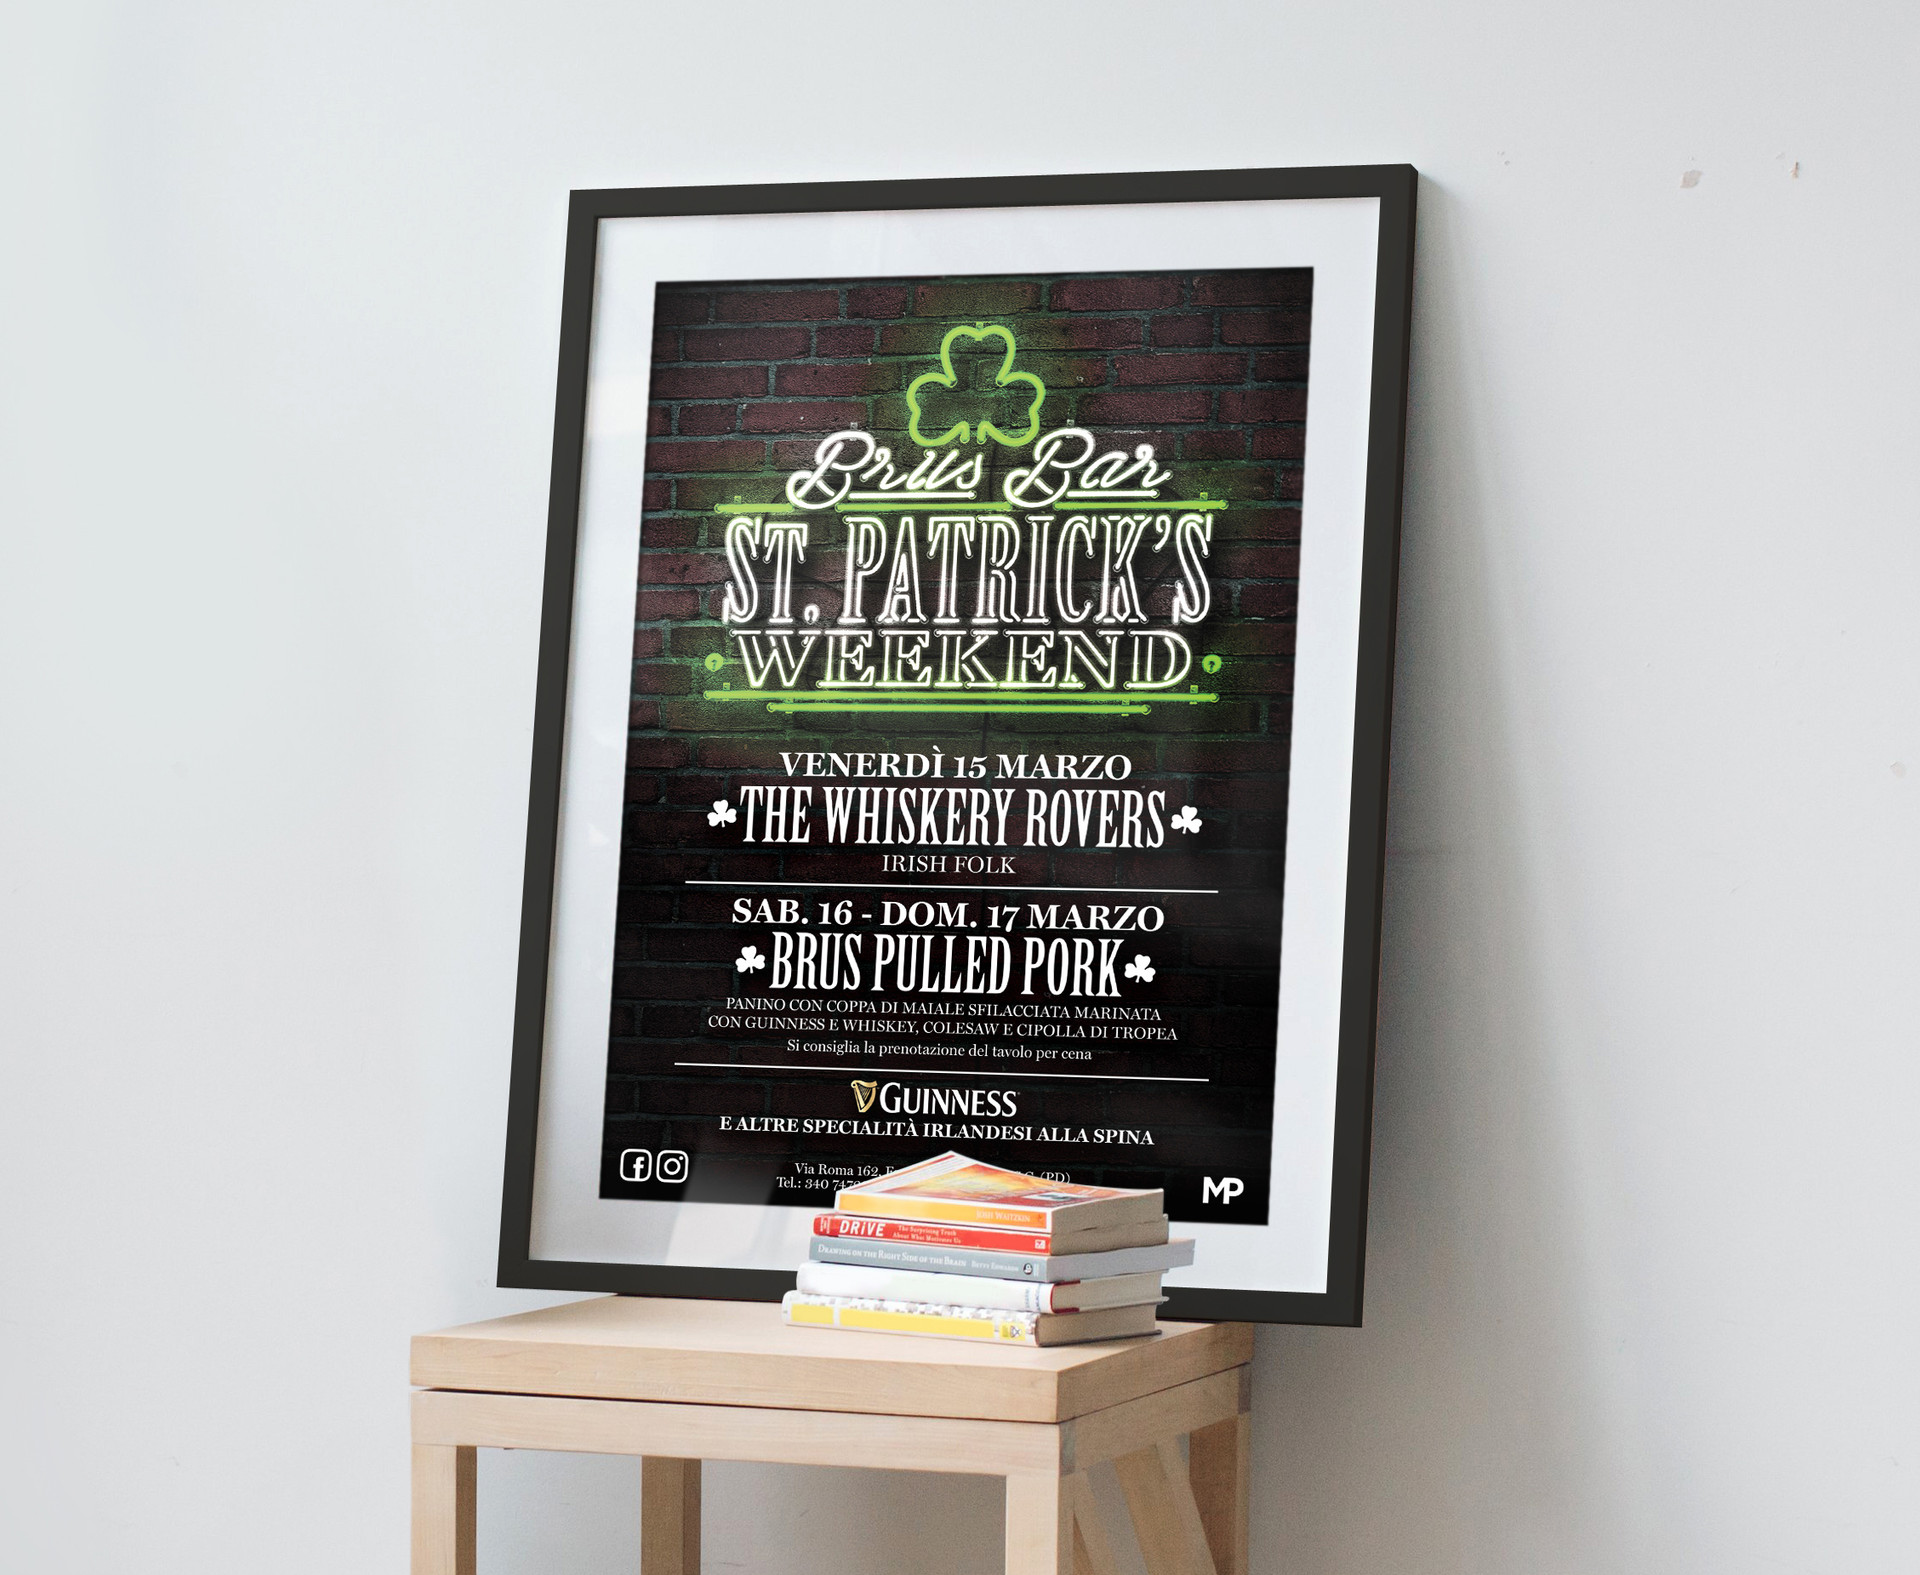 St Patrick's Weekend 2019 - MP Grafica